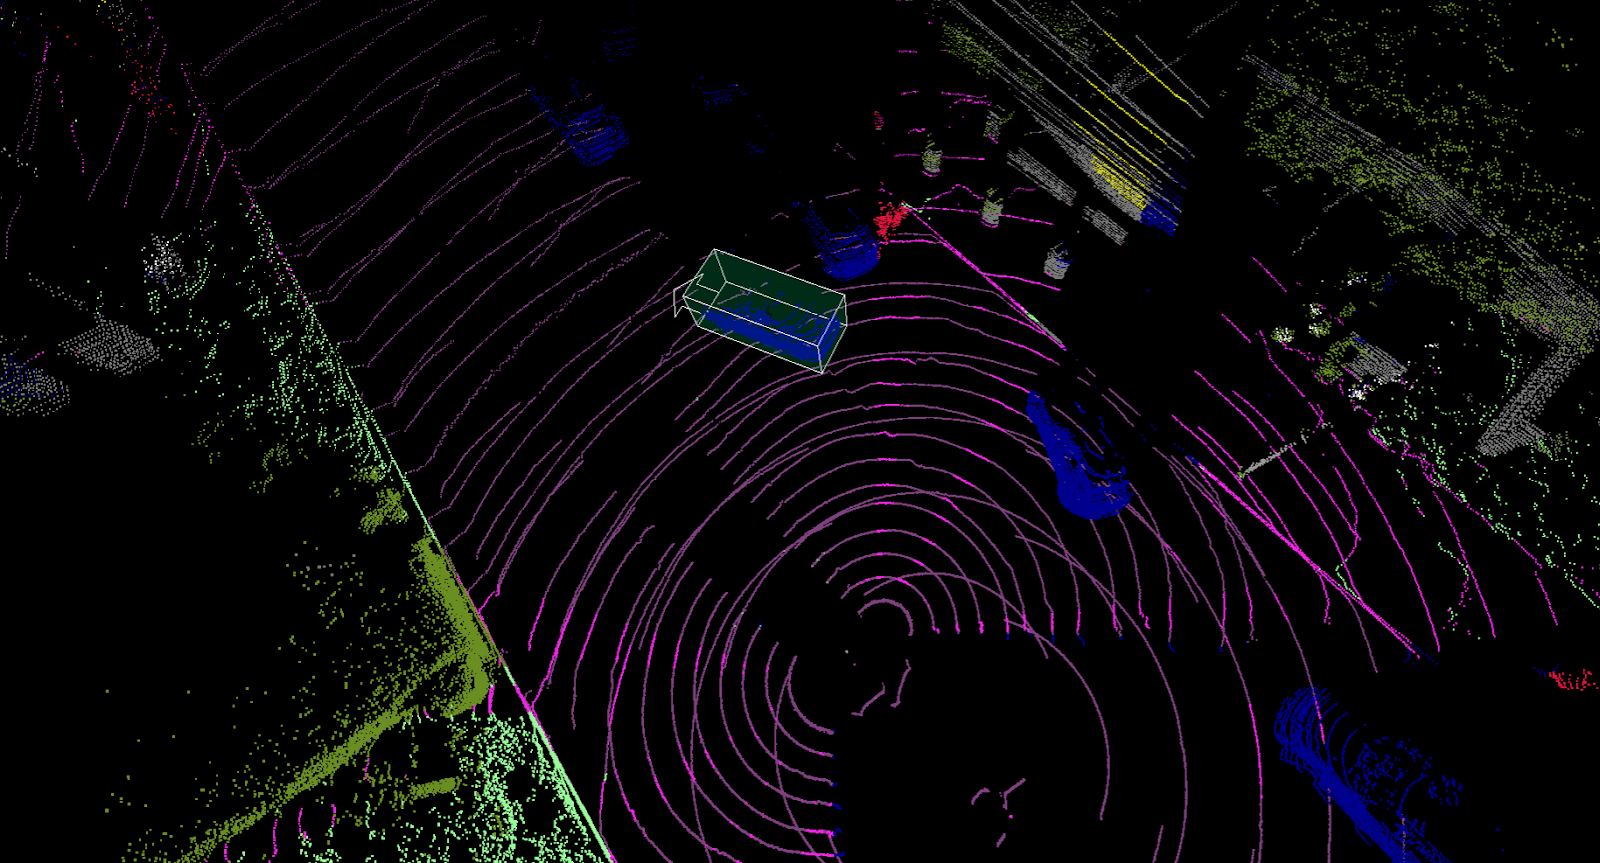 This is an example of a point cloud that is annotated for computer vision using a 3-D cuboid around the target object. The image shows segmented areas of vegetation and an object of interest, a vehicle, is annotated with a 3-D cuboid. Source: UnderstandAI using Pointillism, its data annotation tool.